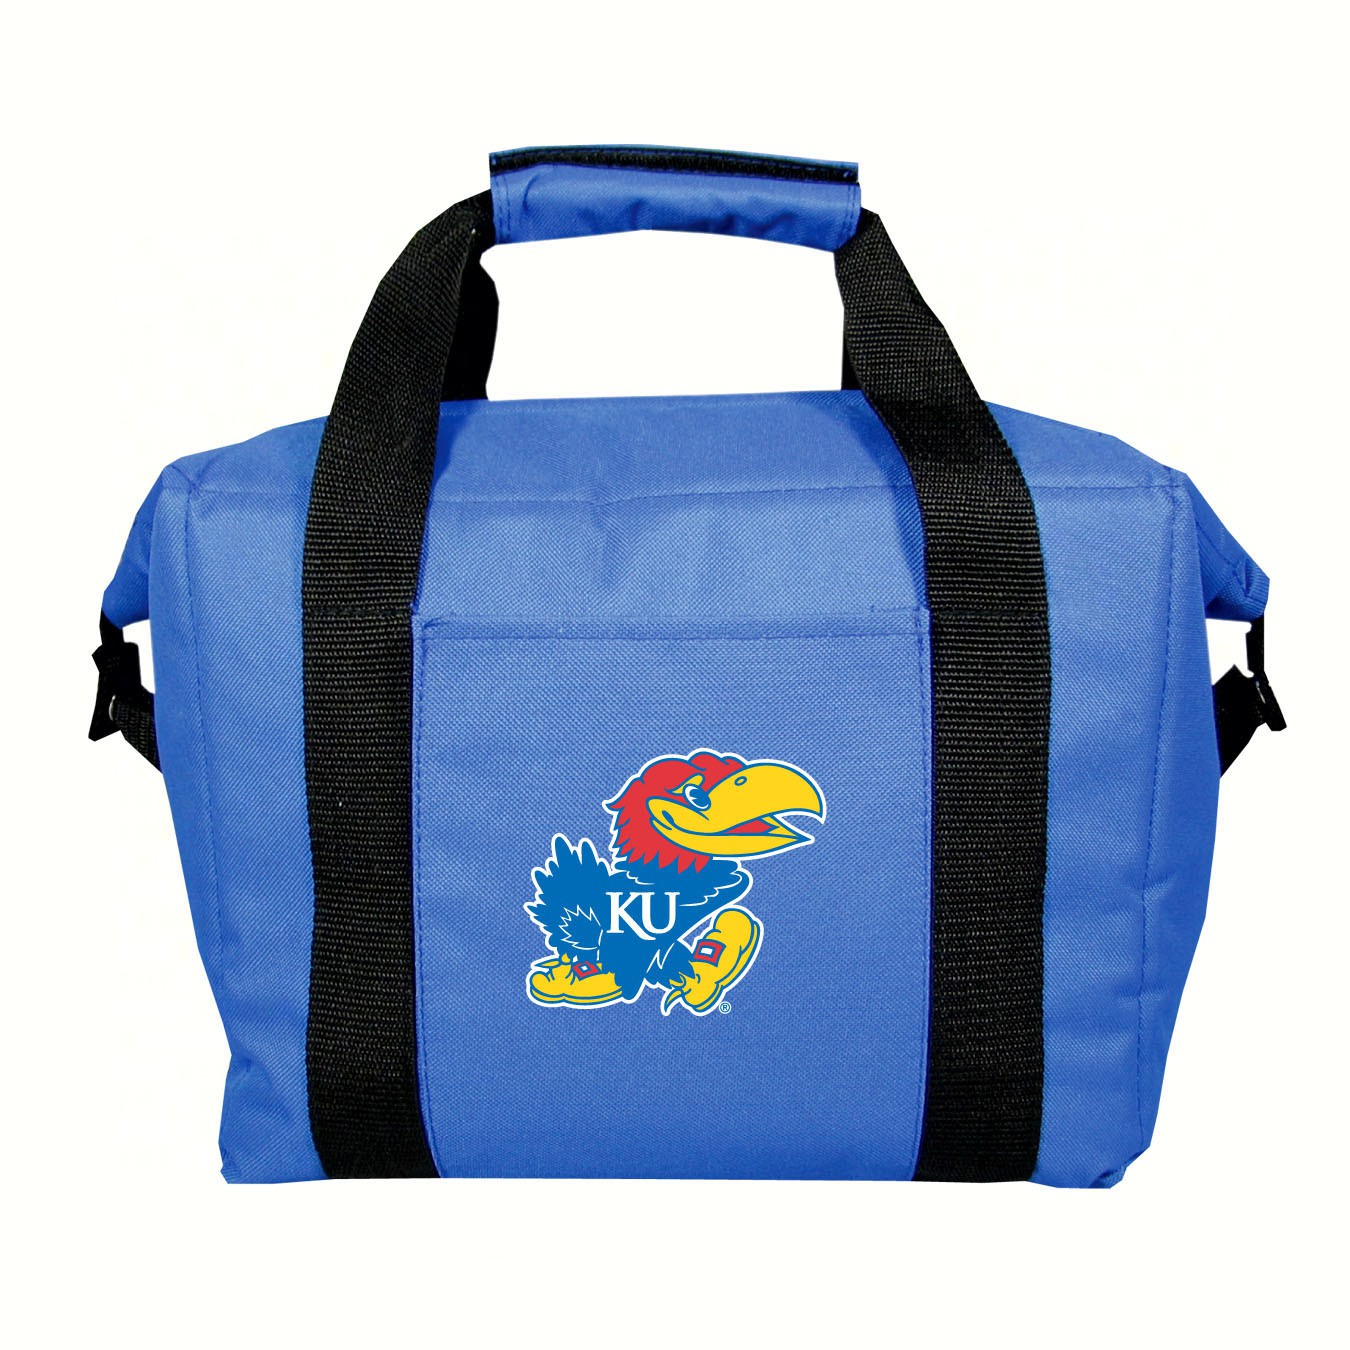 Kooler Bag Kansas Jayhawks (Holds a 12 Pack)